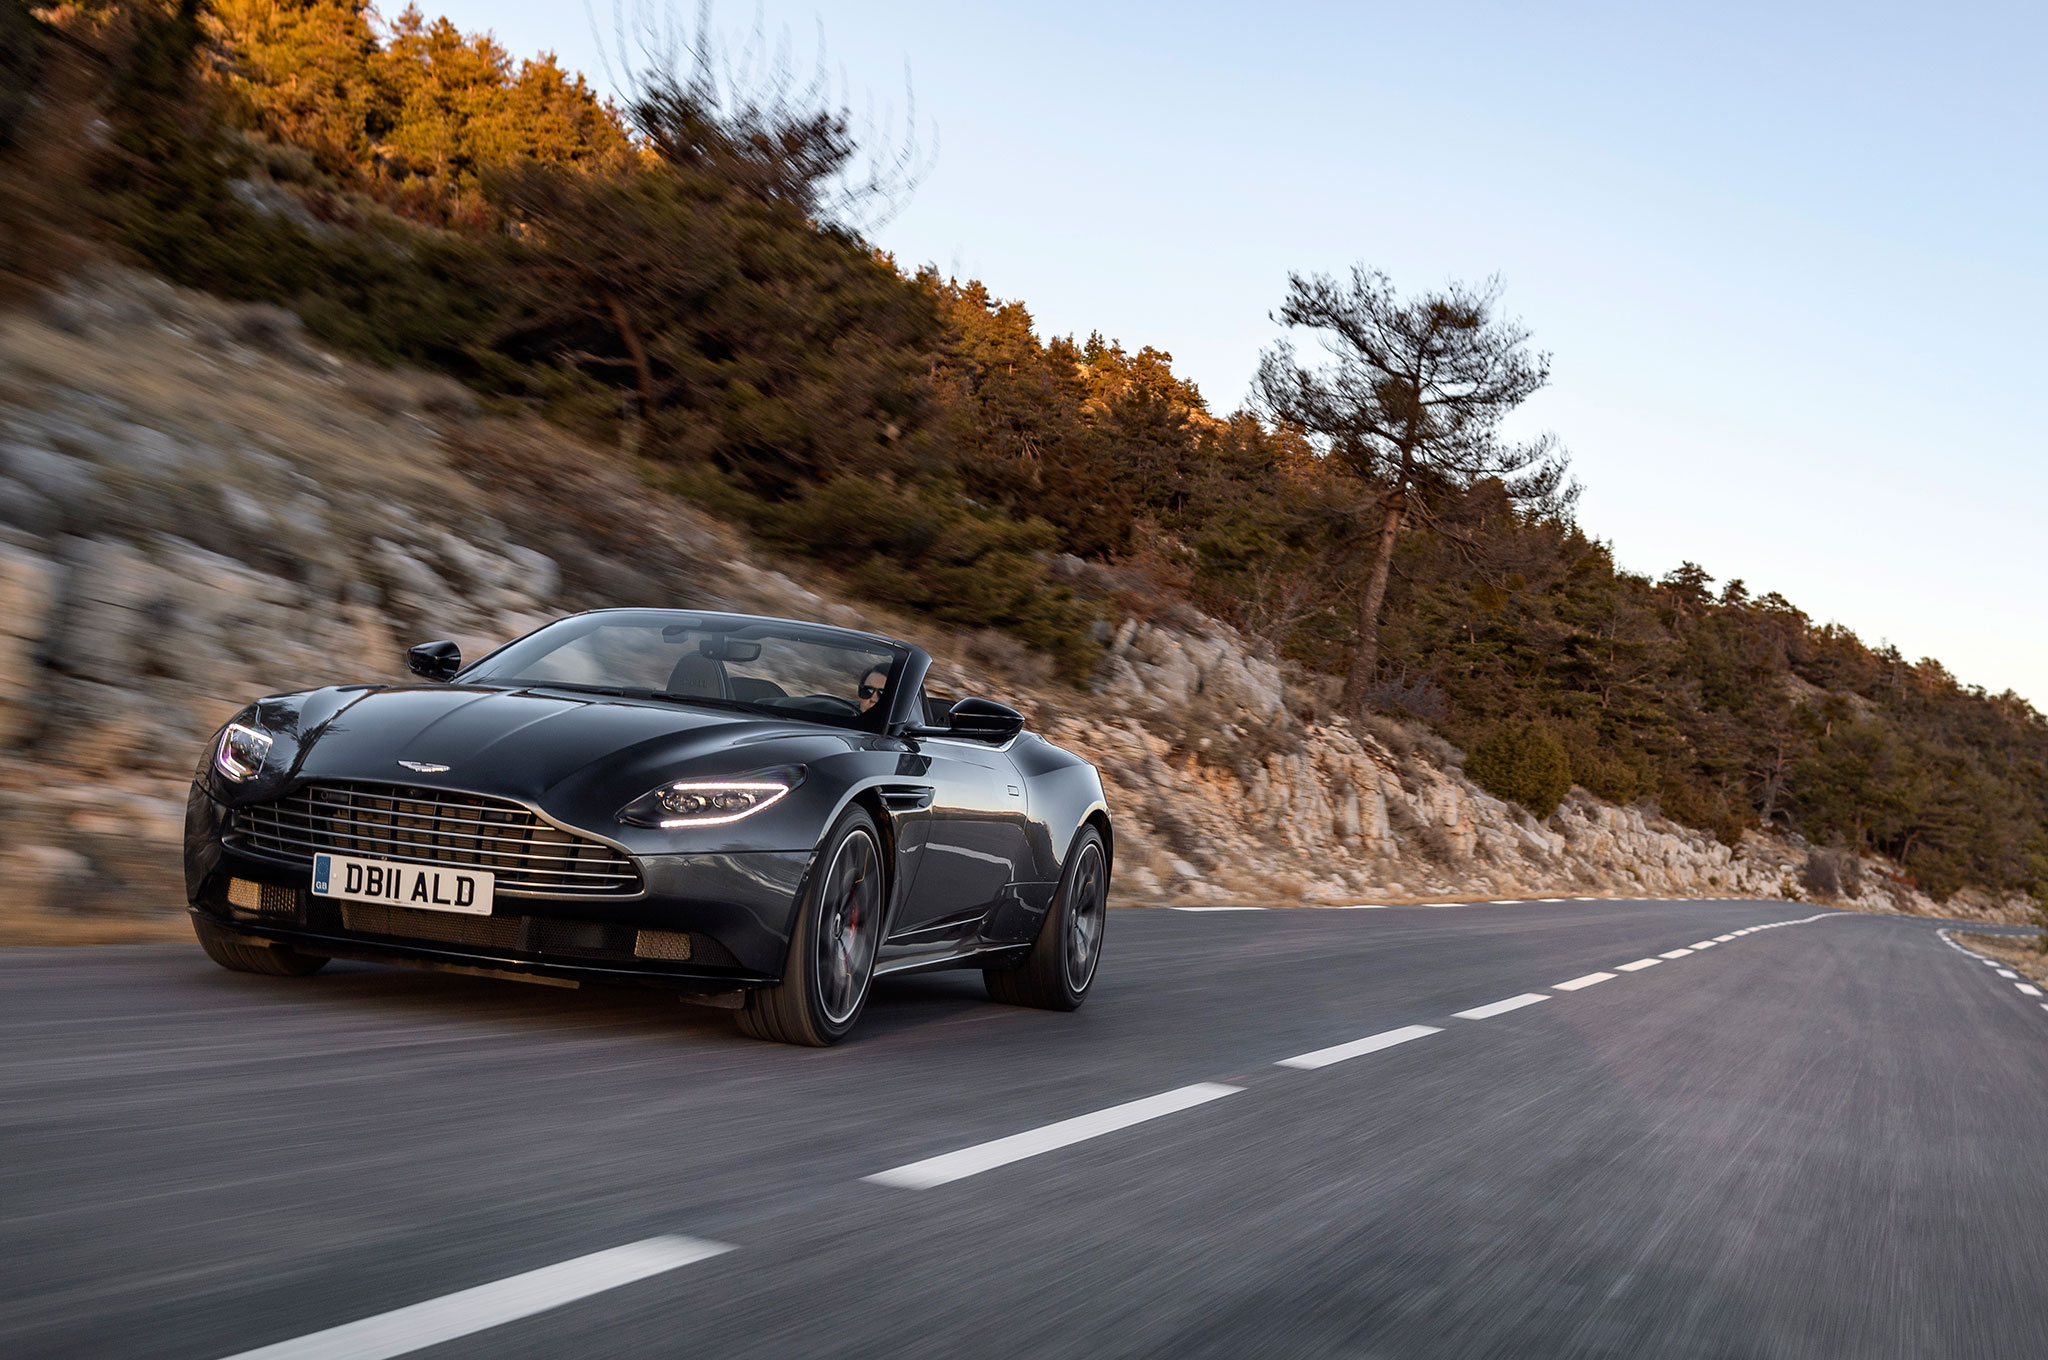 2019 Aston Martin DB11 Volante Magnetic Silver Front View With Road